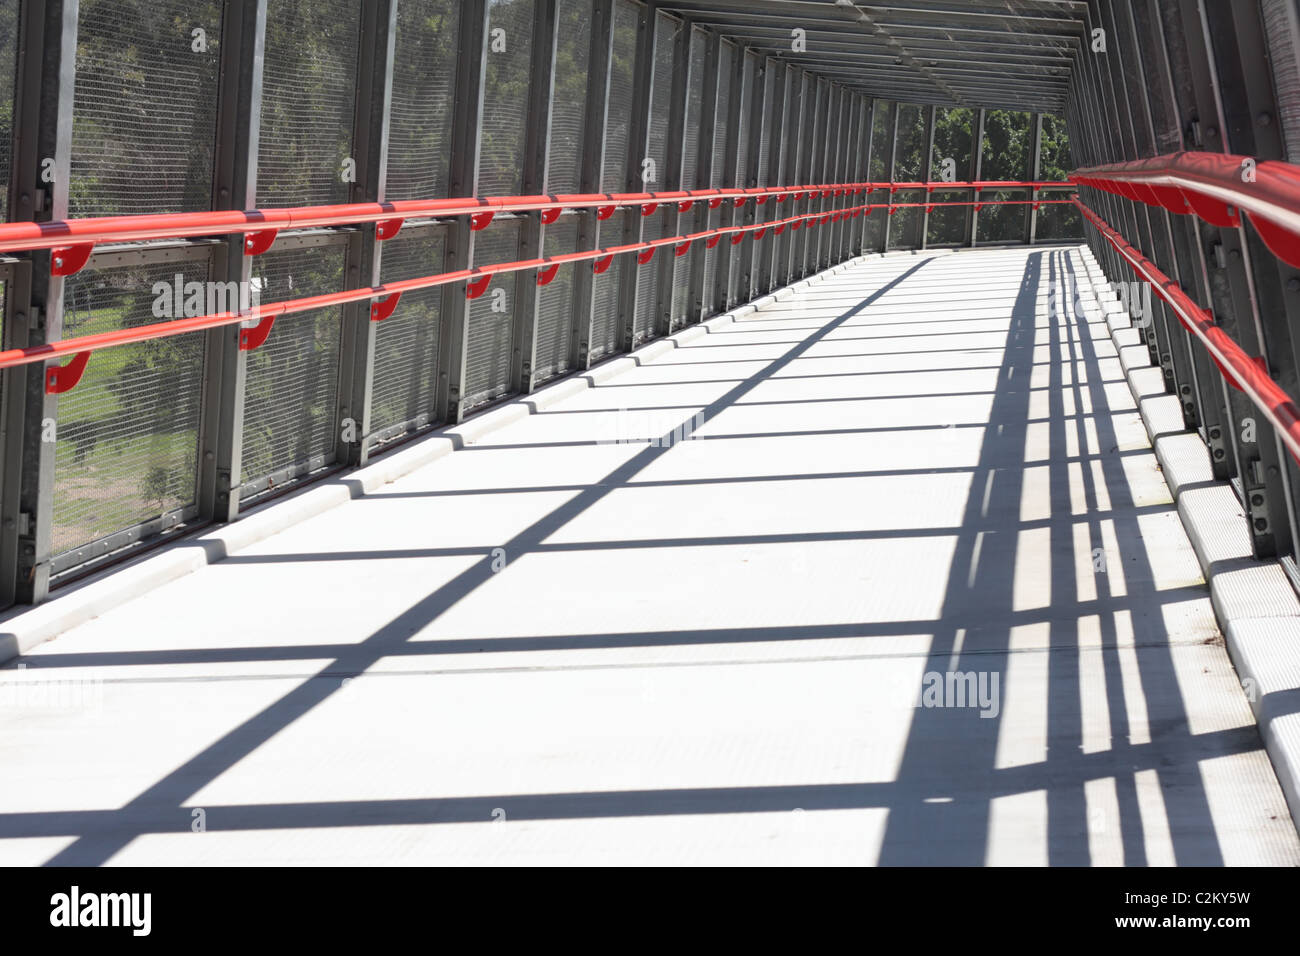 Walking Bridge enclosed for Safety - Stock Image